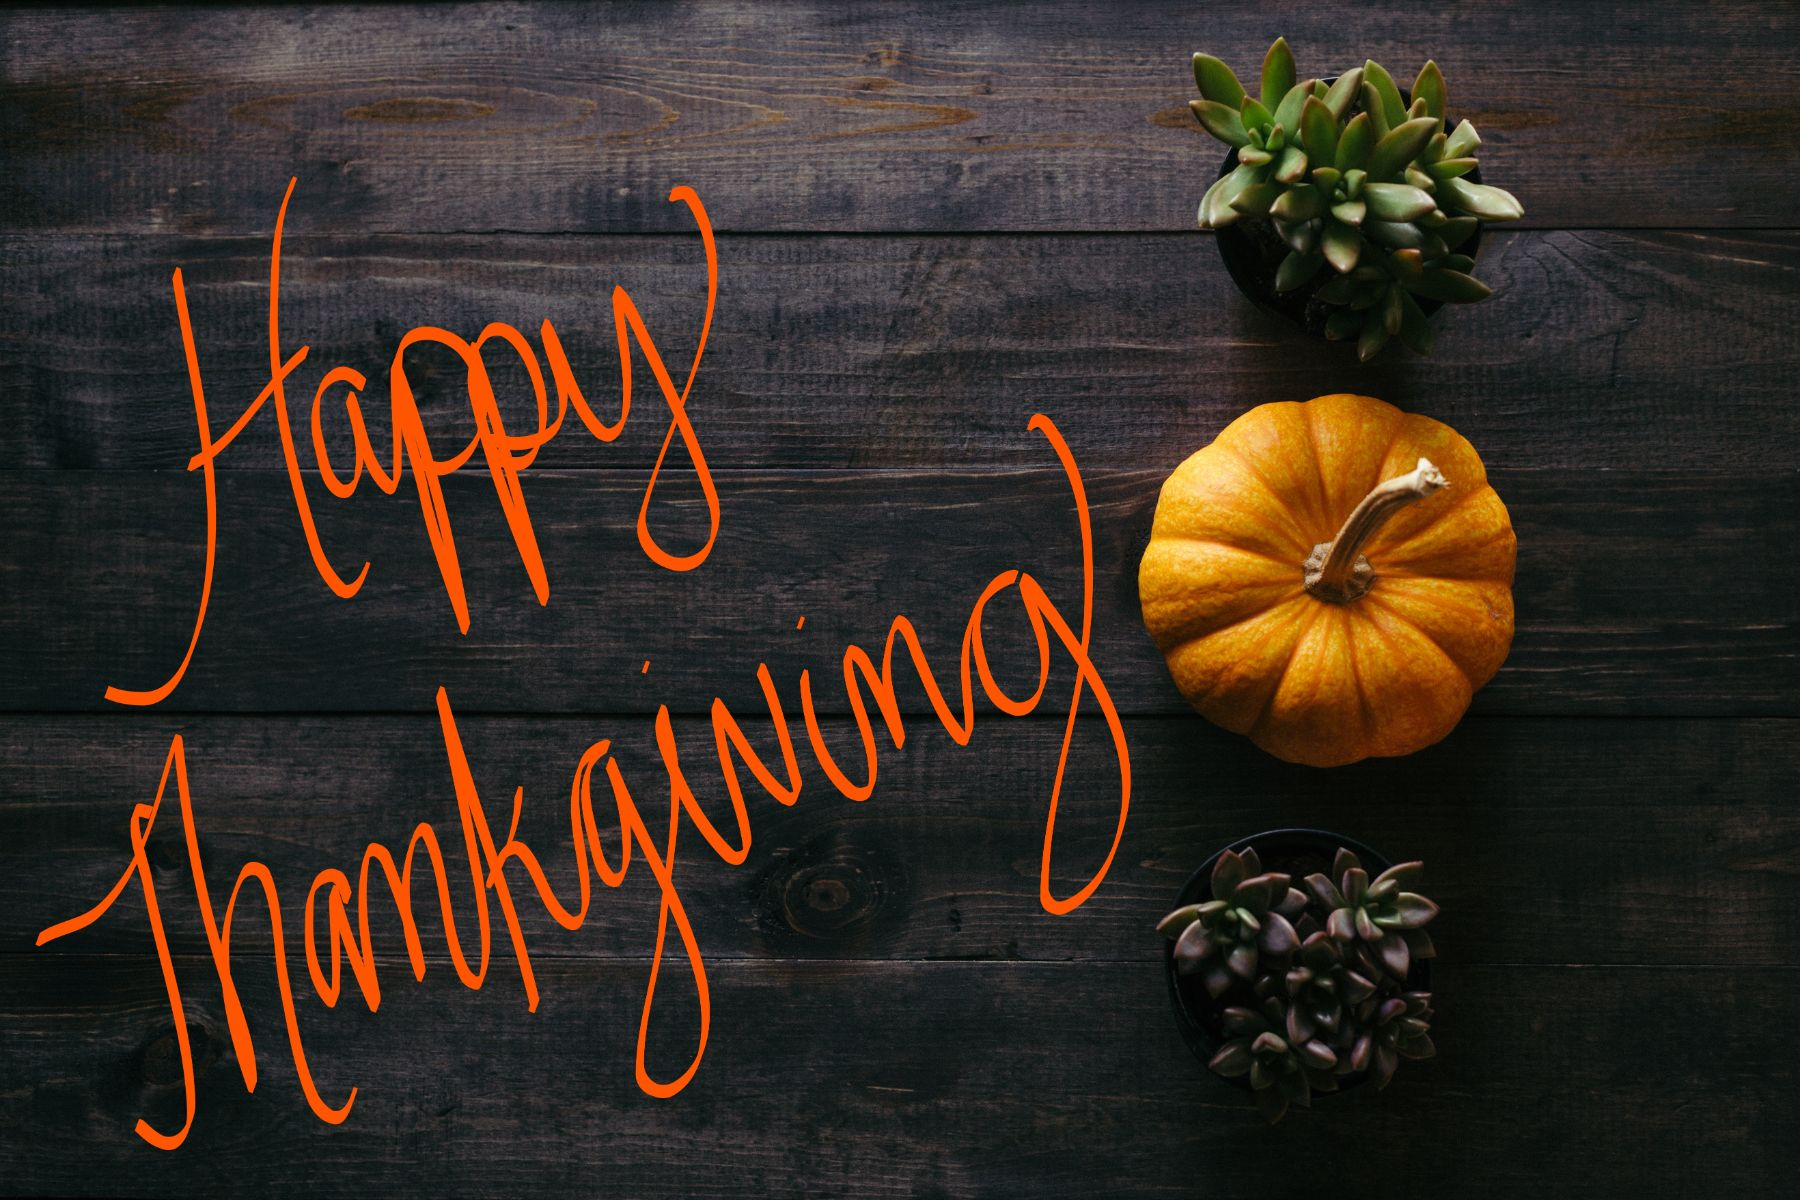 Happy Thanksgiving from Morning Star Builders